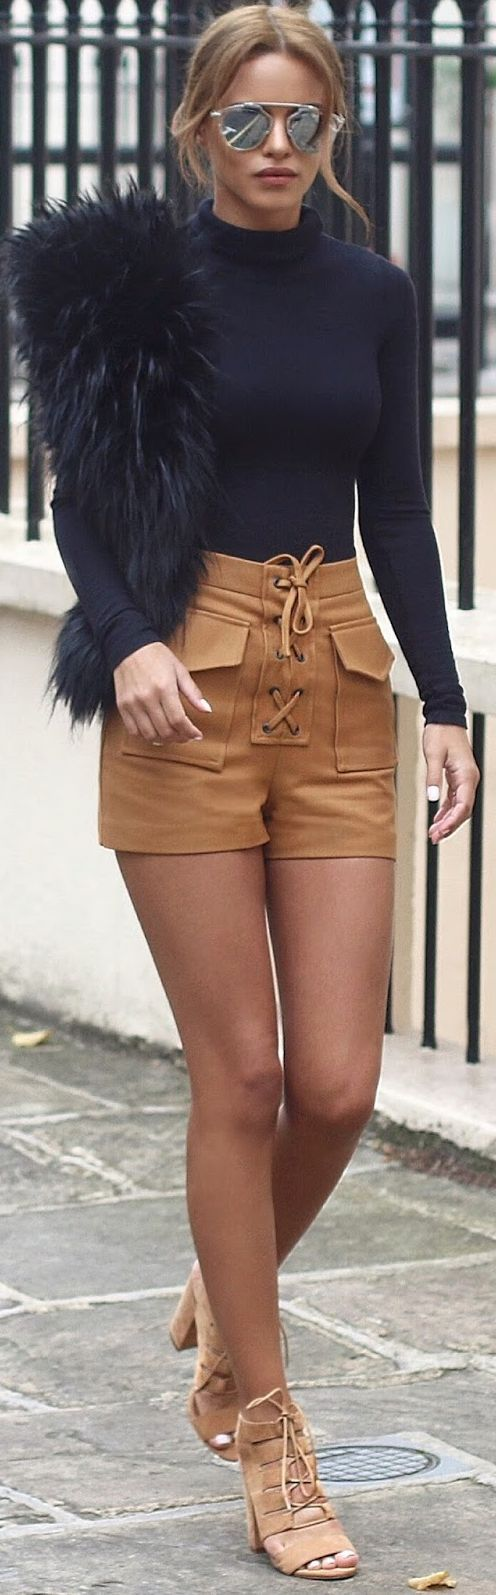 Camel Lace Up Leather Shorts Fall Inspo